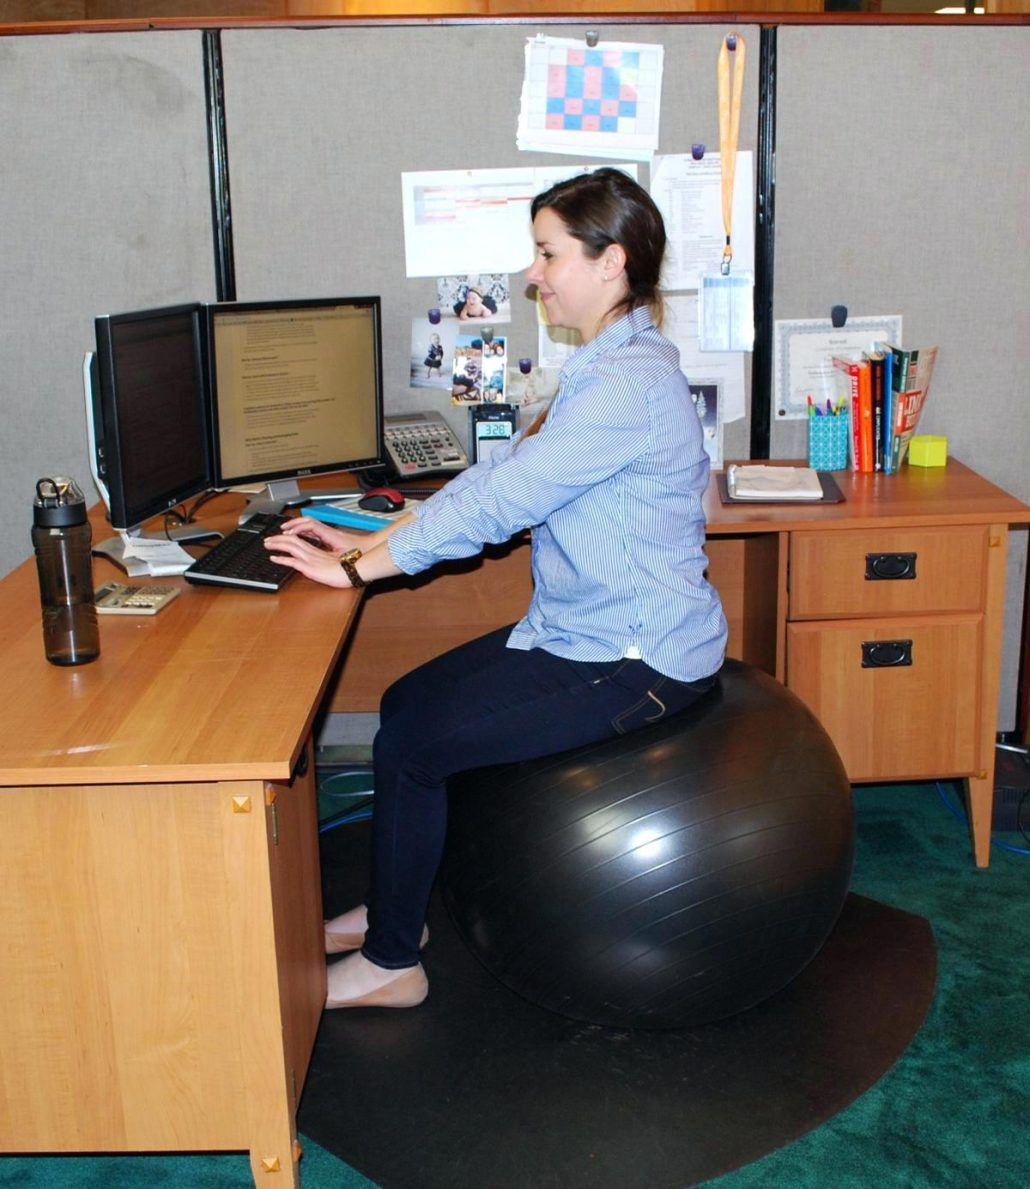 Office Chair Exercise Ball Luxury Home Office Furniture Check More At Http Www Drjamesghoodblog Com Office Chair Exercise Ball